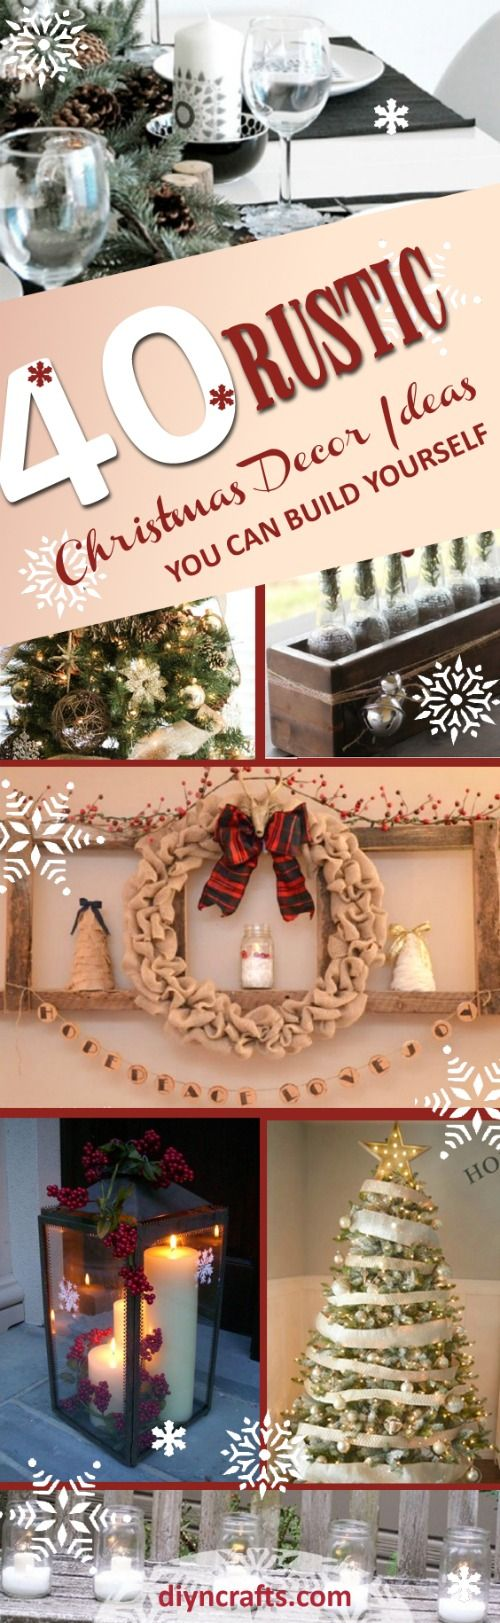 What could possibly be better than an old-fashioned, rustic Christmas? If you love that country look, and you want nothing more than to bring it home for the holidays, I've got a treat for you. I've collected 40 unique and really easy ways that you can create a rustic look with your Christmas décor this season. #Christmas #diy #decor #rustic via @vanessacrafting